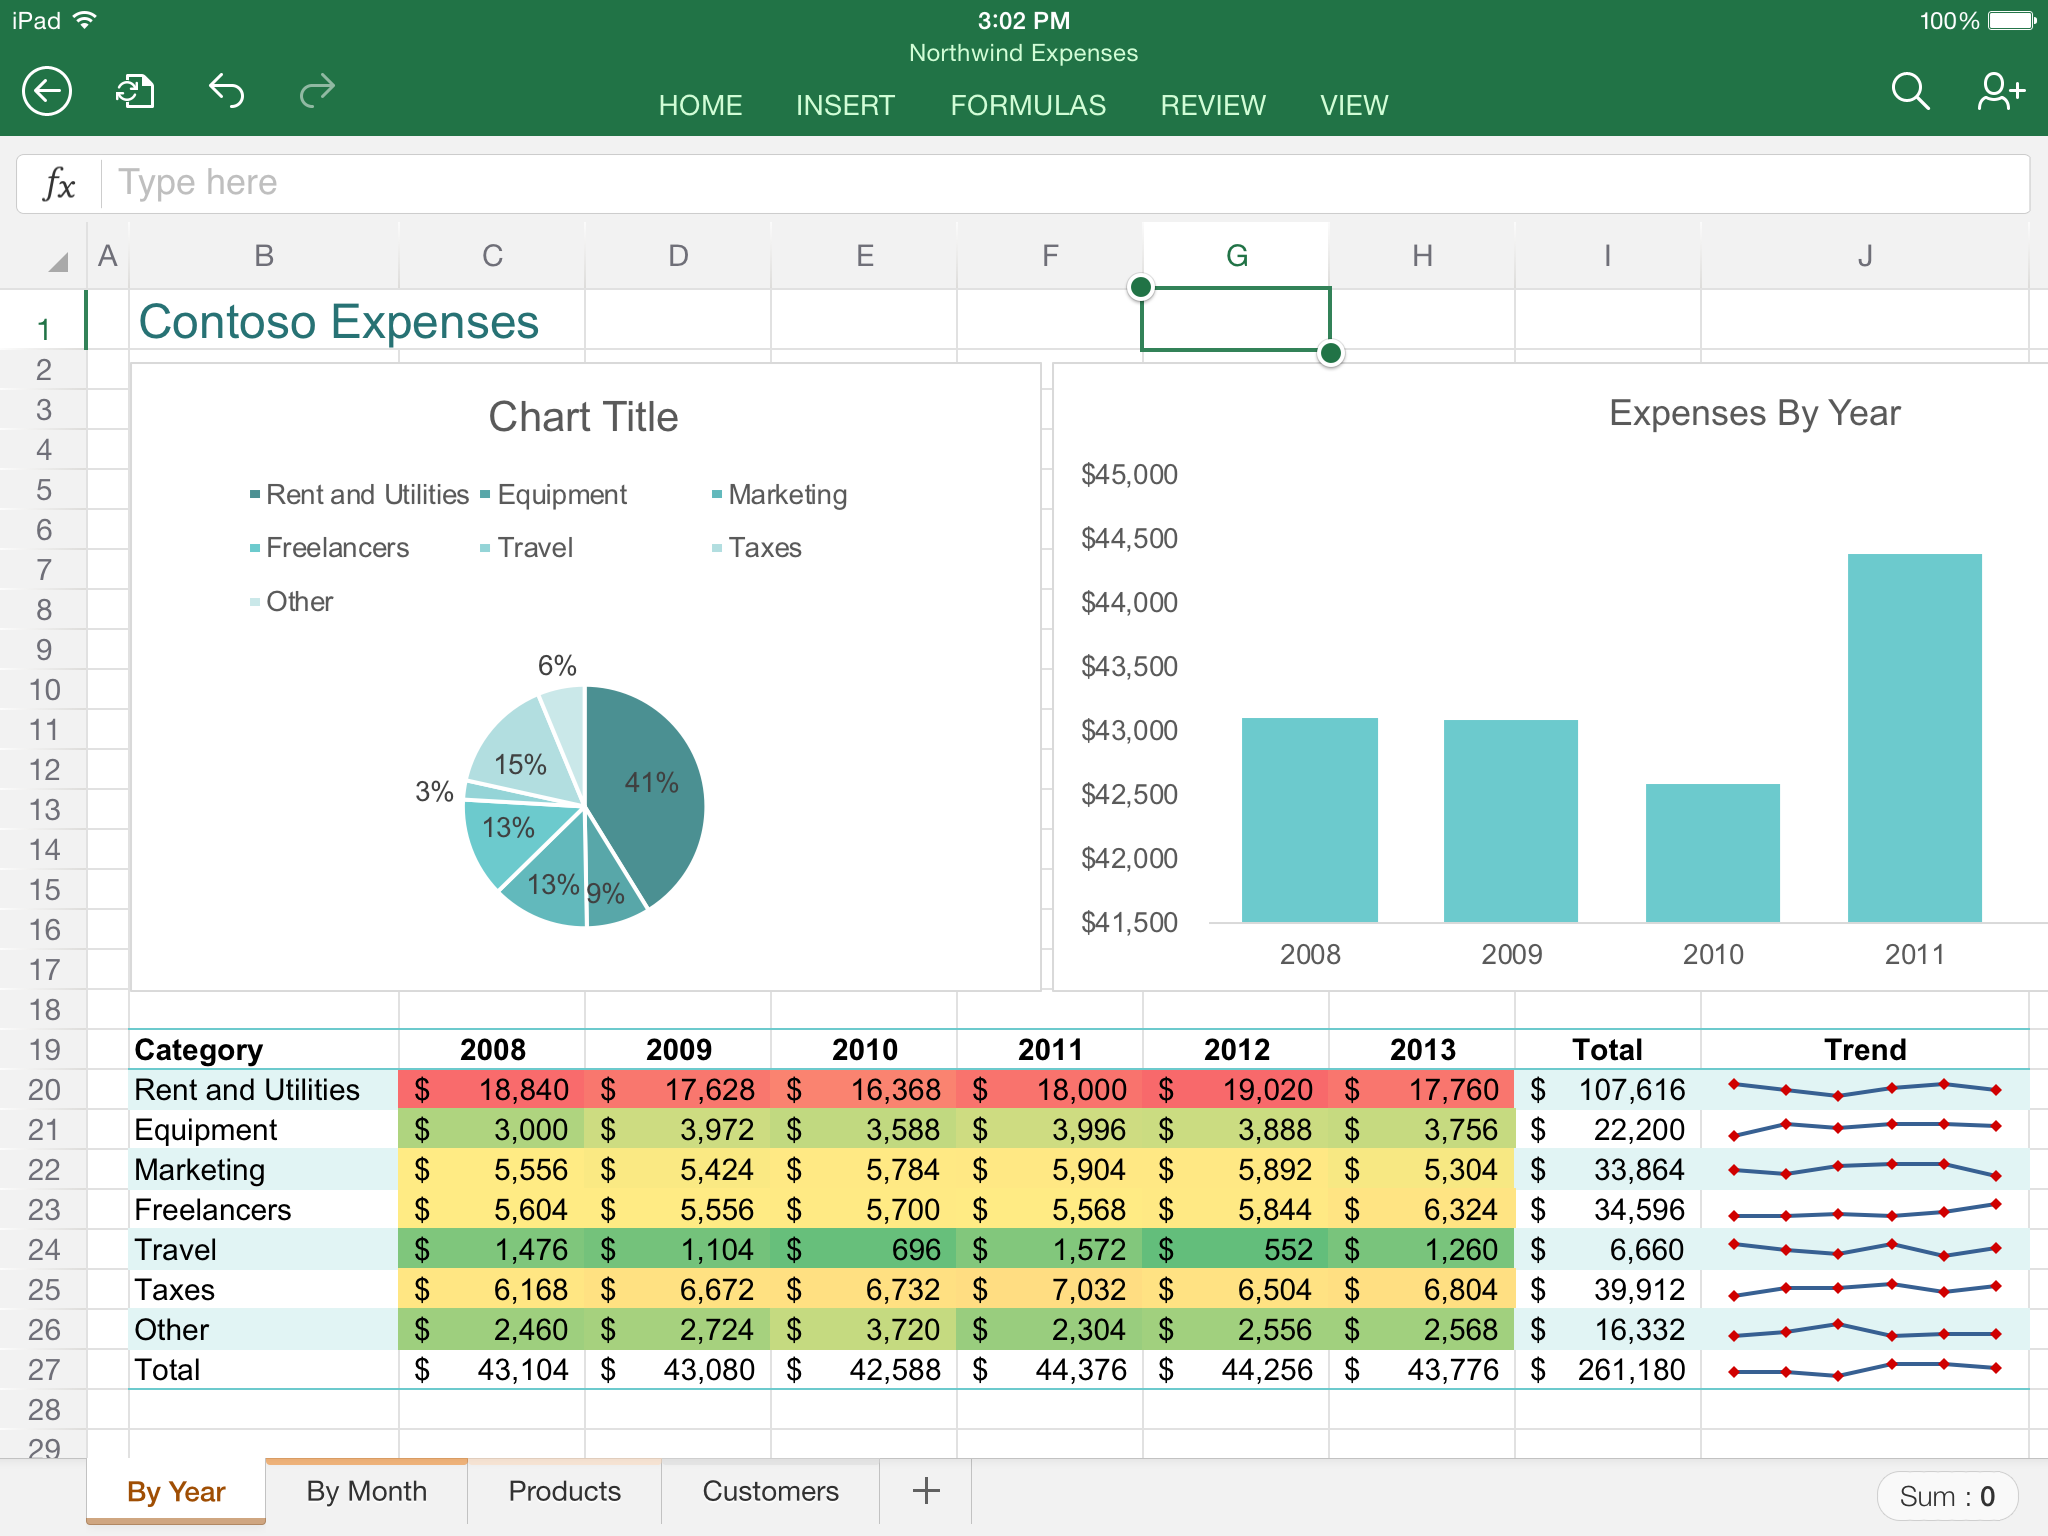 Ediblewildsus  Winning App Highlight Excel  Mobile Digital Now With Exquisite Excel In Action With Cute Sum Function Excel  Also Excel Family Budget Template In Addition Welchs T Test Excel And Sheet Tabs Excel Definition As Well As Use Of What If Analysis In Excel Additionally How To Calculate Margin In Excel From Youstonybrookedu With Ediblewildsus  Exquisite App Highlight Excel  Mobile Digital Now With Cute Excel In Action And Winning Sum Function Excel  Also Excel Family Budget Template In Addition Welchs T Test Excel From Youstonybrookedu